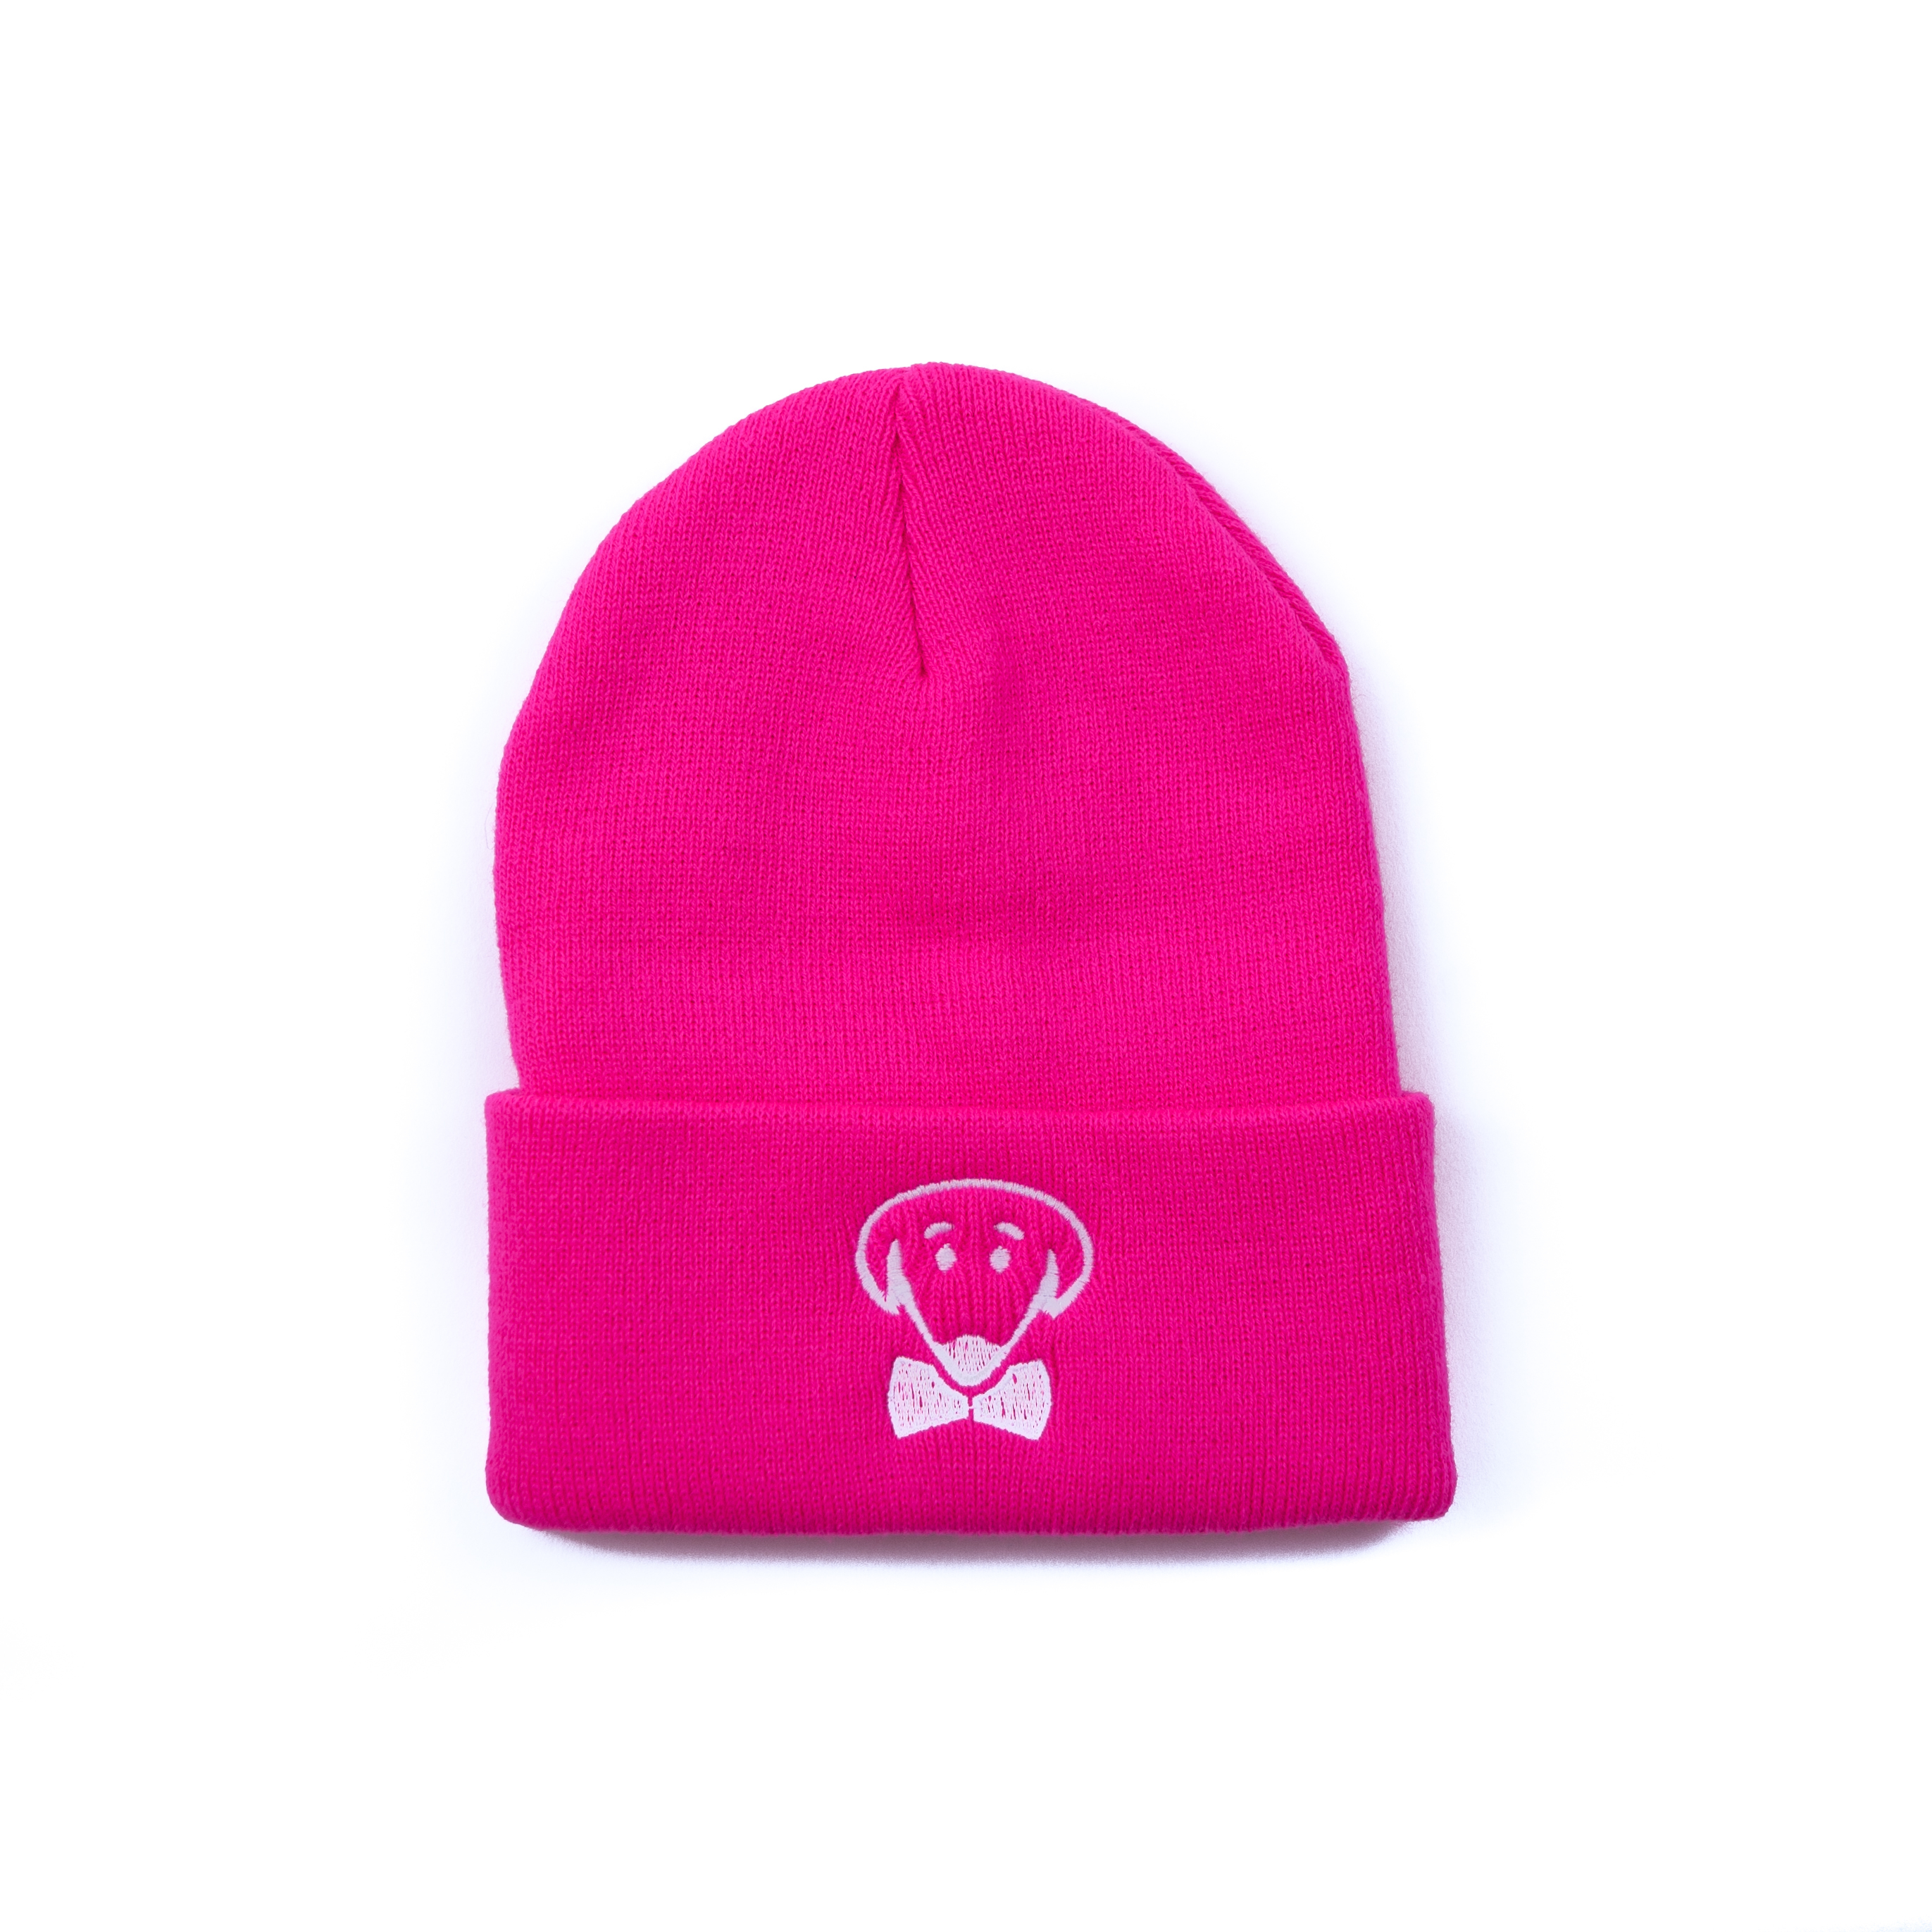 Neon blue or neon pink knit hat beanie with dog logo